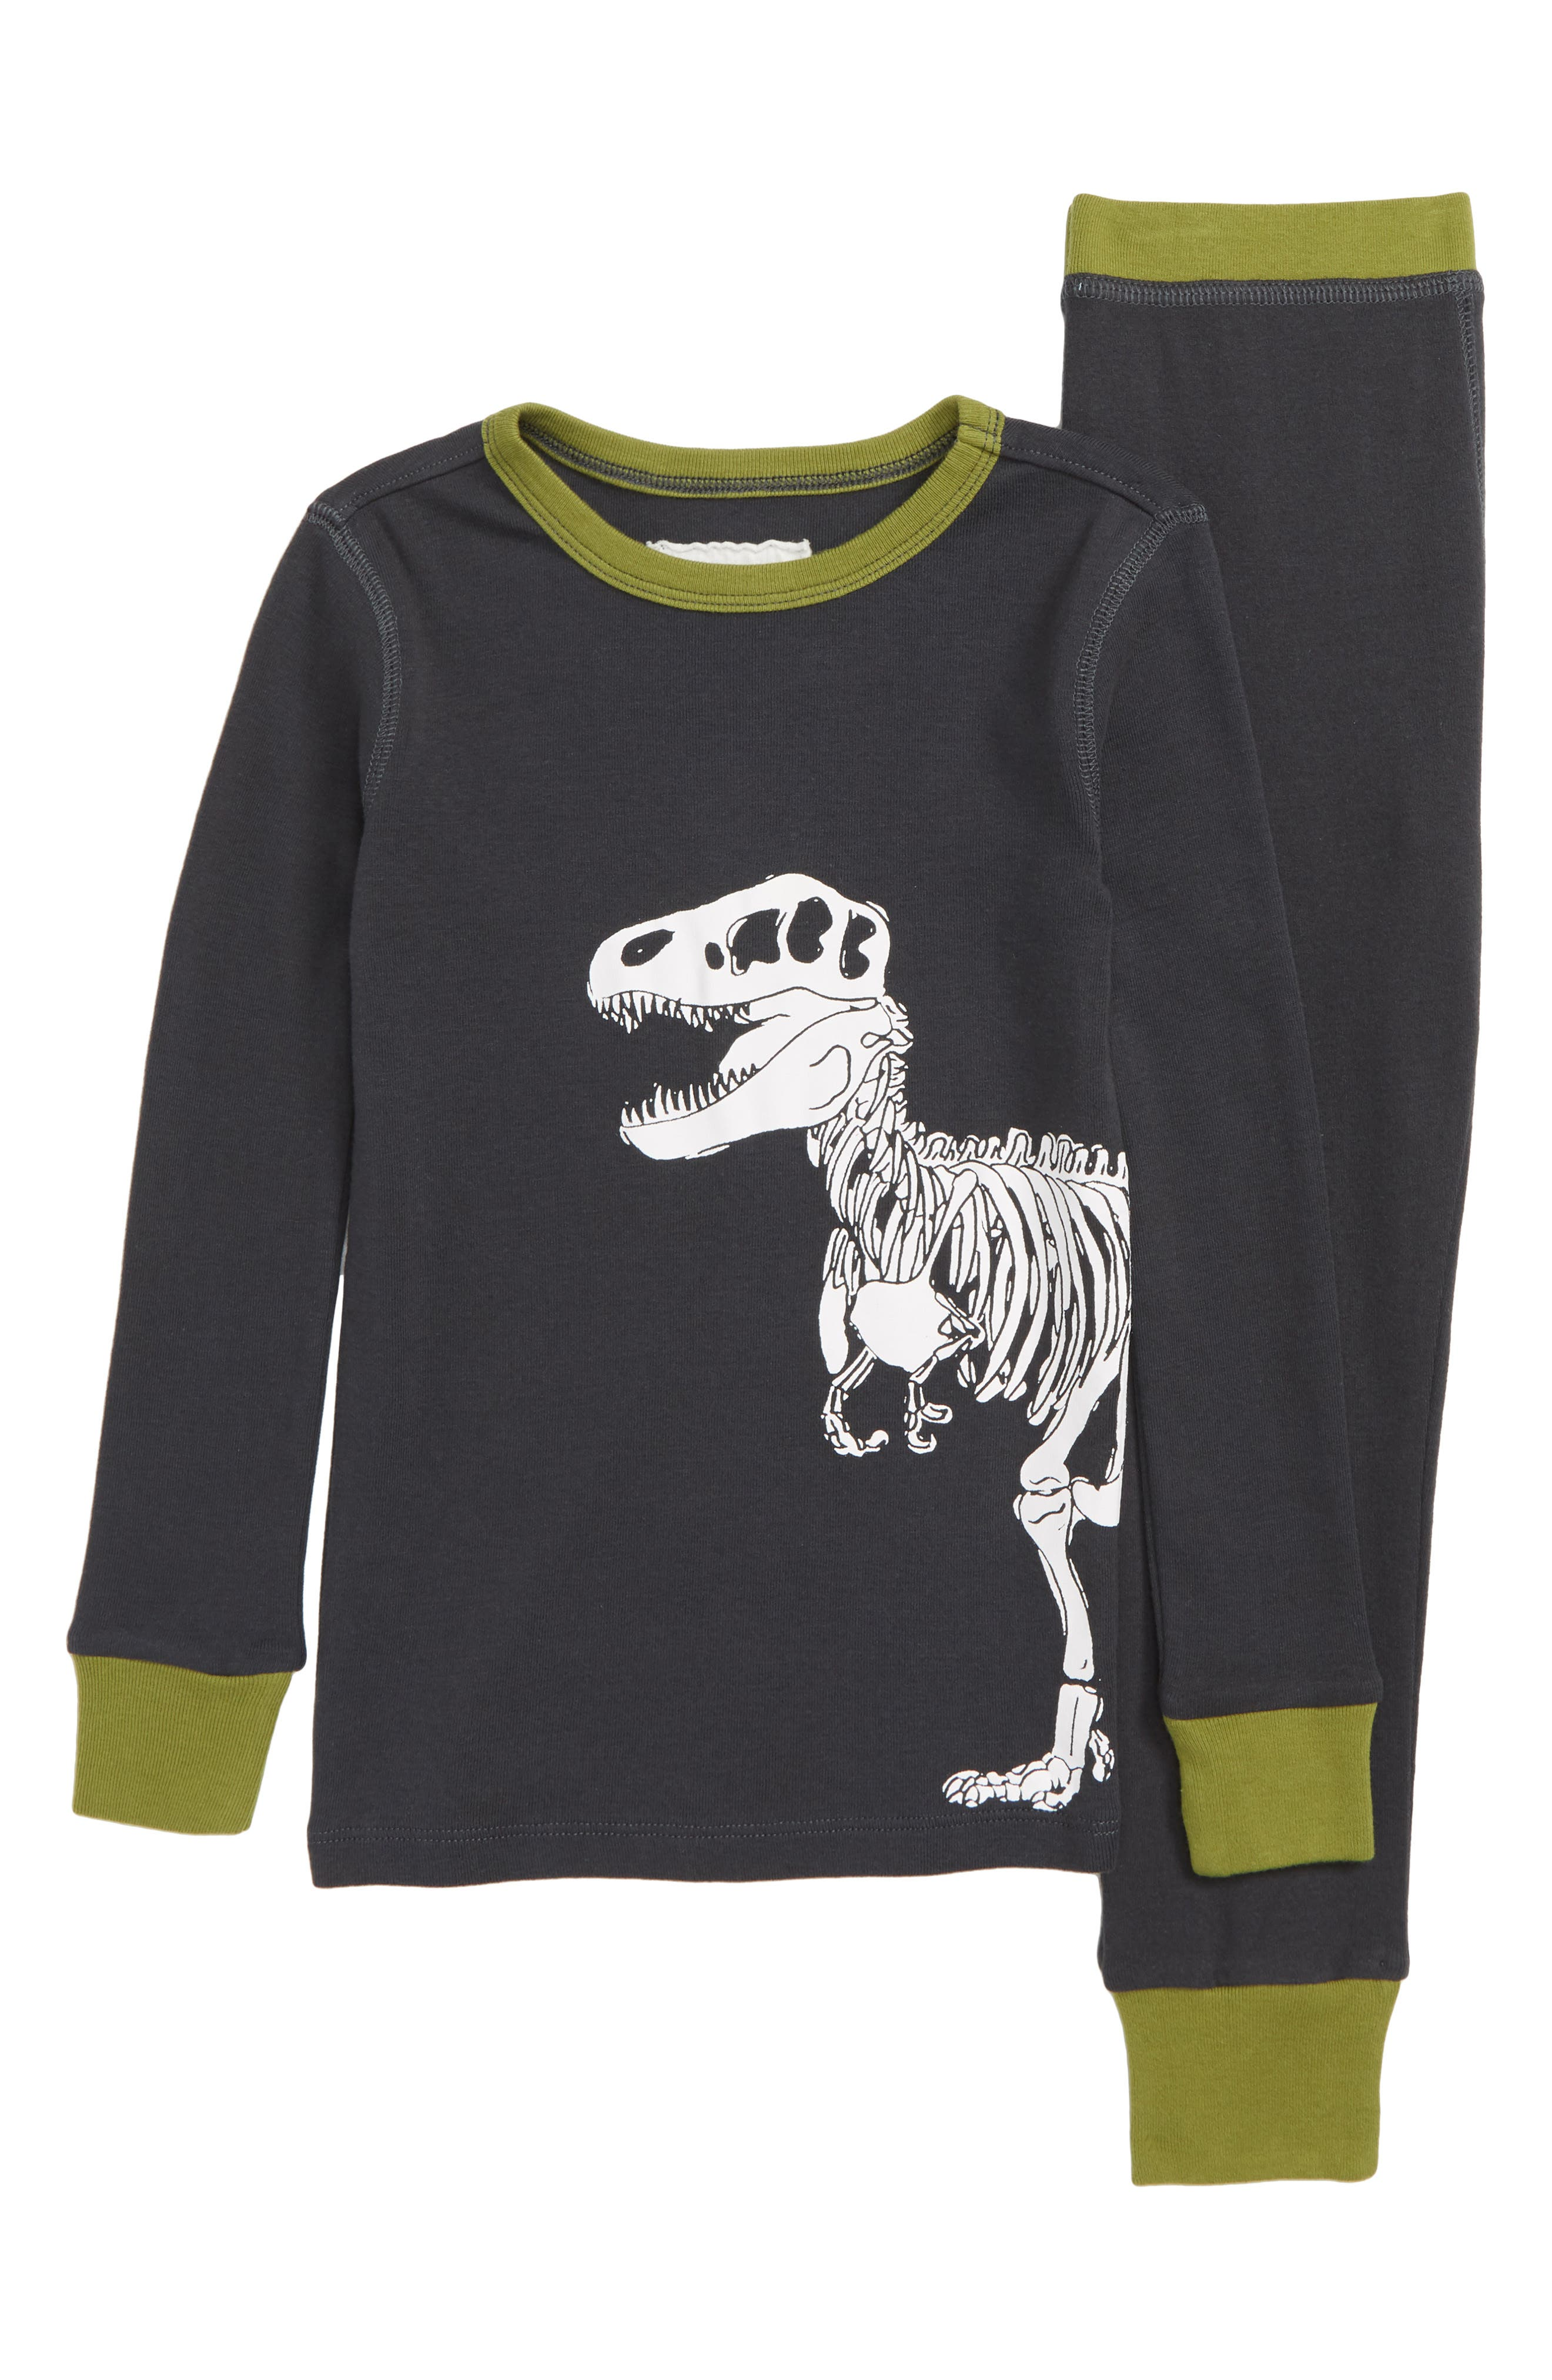 T. Rex Skeleton Fitted Two-Piece Pajamas,                         Main,                         color, 001